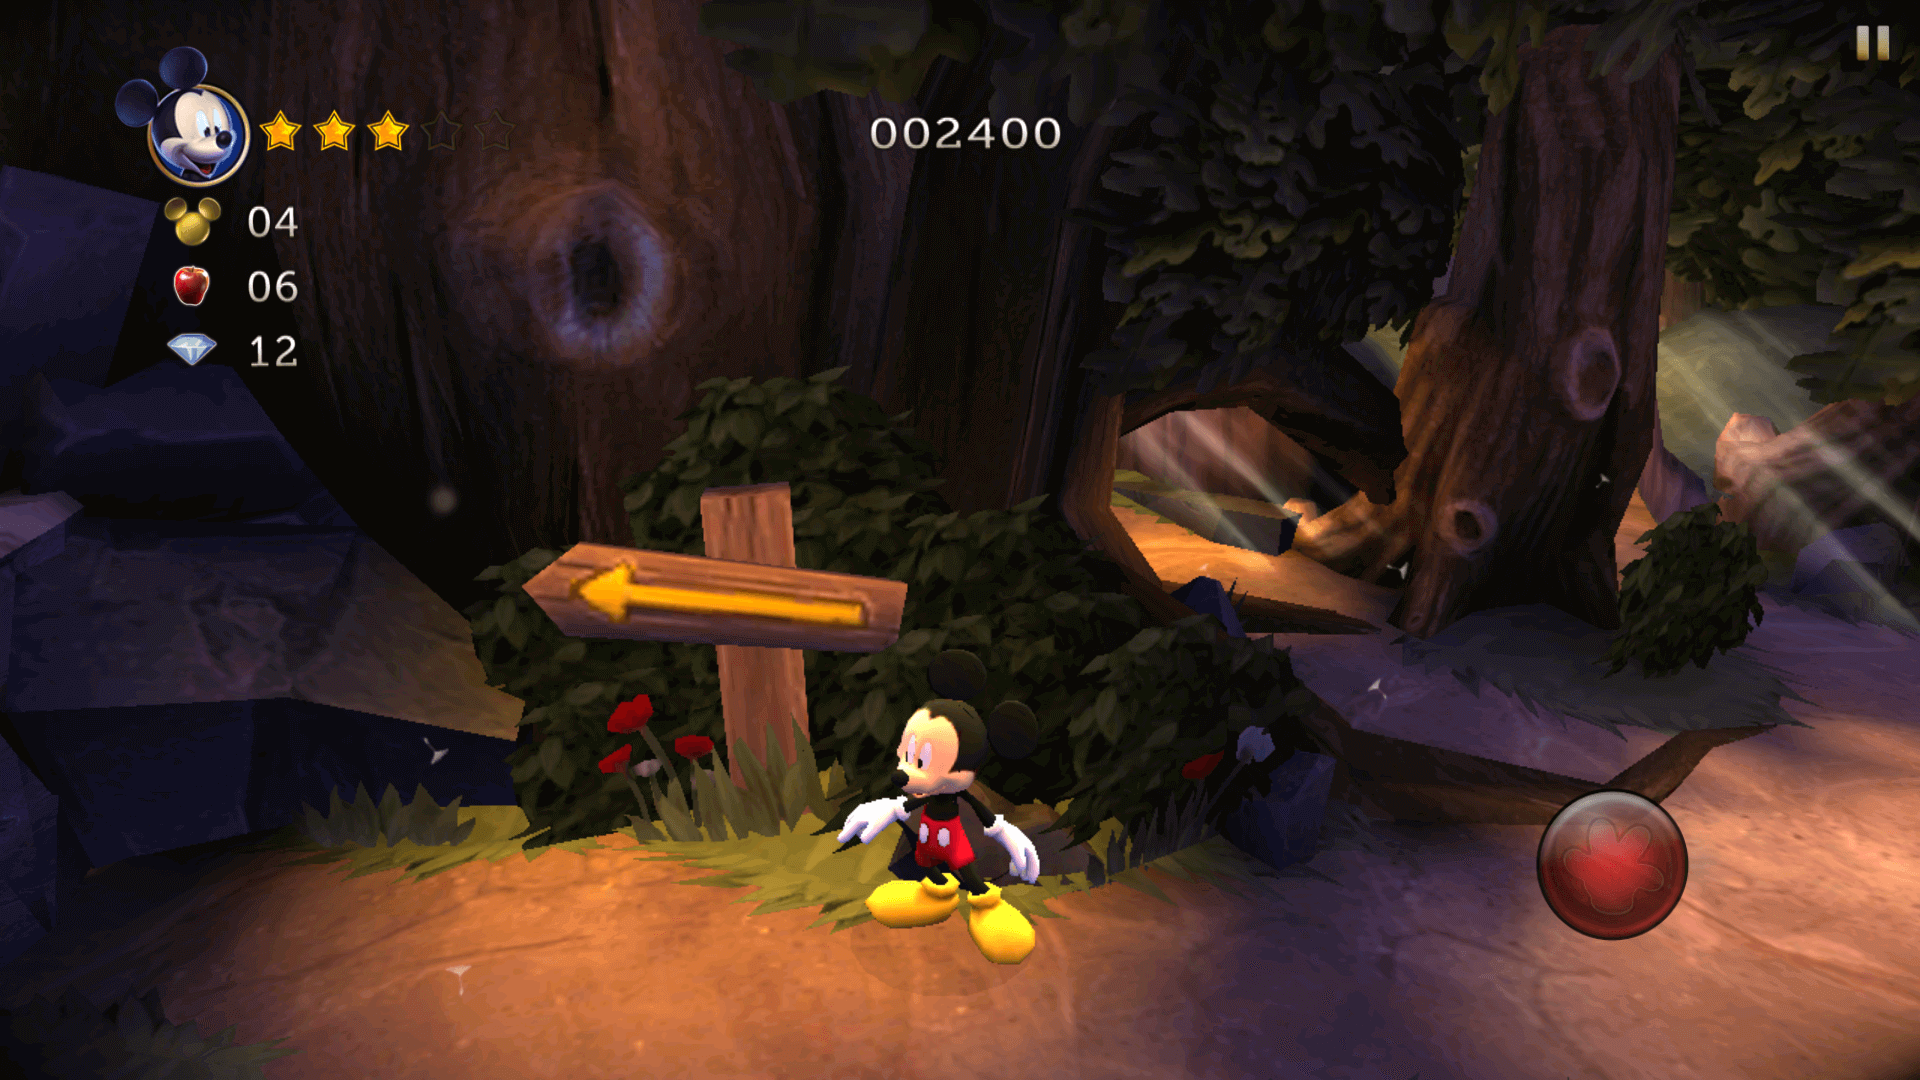 Castle of Illusion Starring Mickey Mouse is a 2.5D platform game developed by Sega Studios Australia and published by Sega.